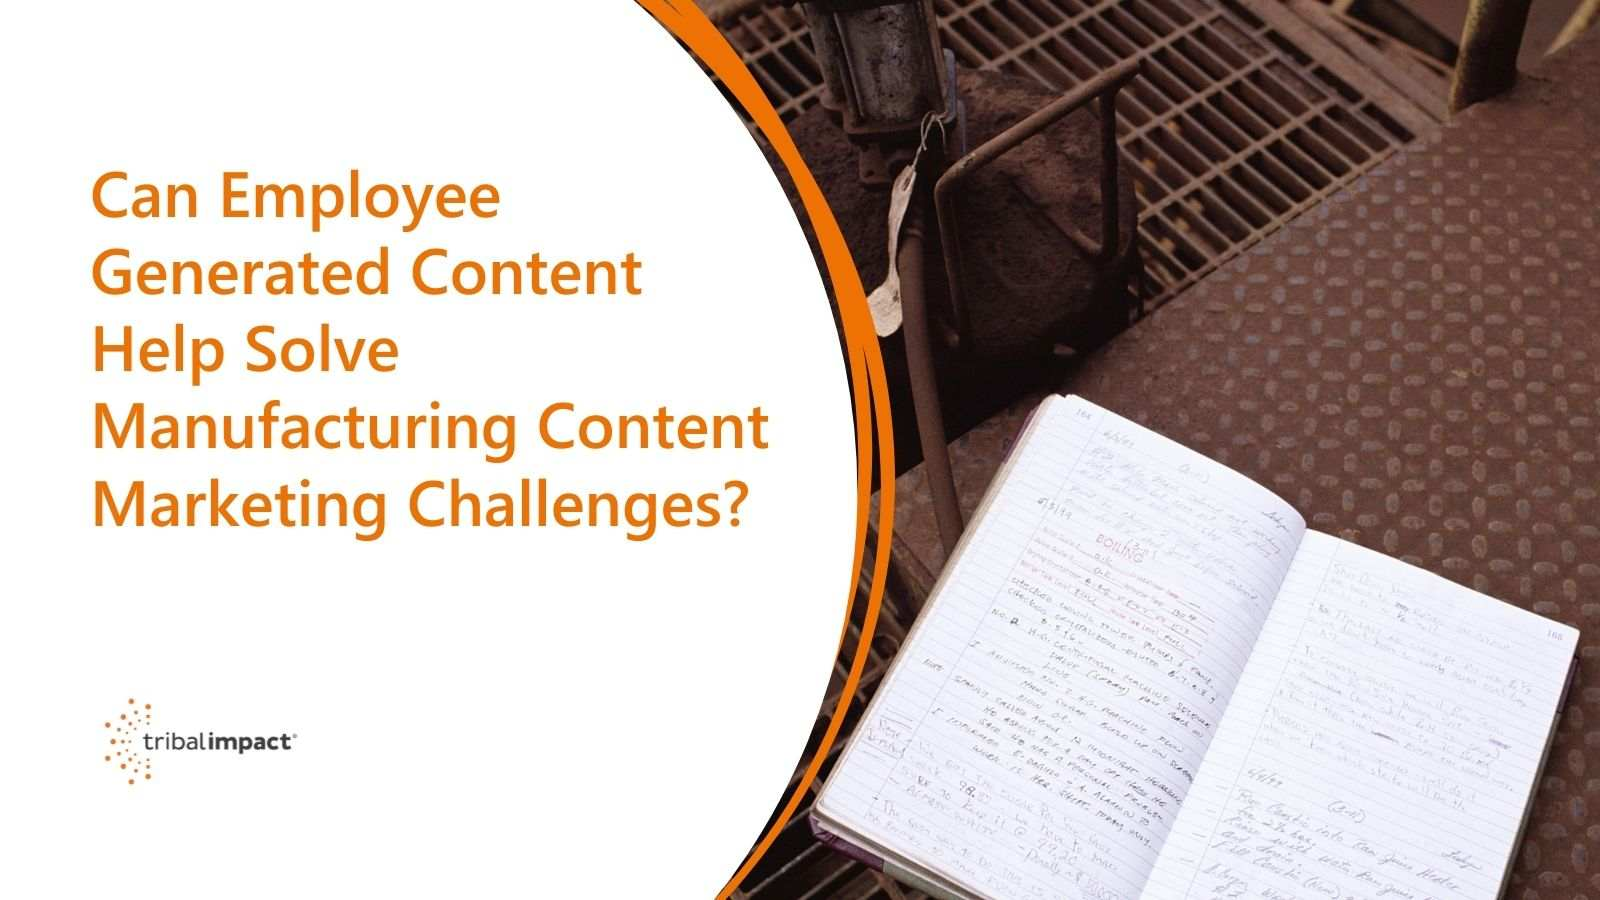 Can Employee Generated Content Help Solve Manufacturing Content Marketing Challenges blog image 1